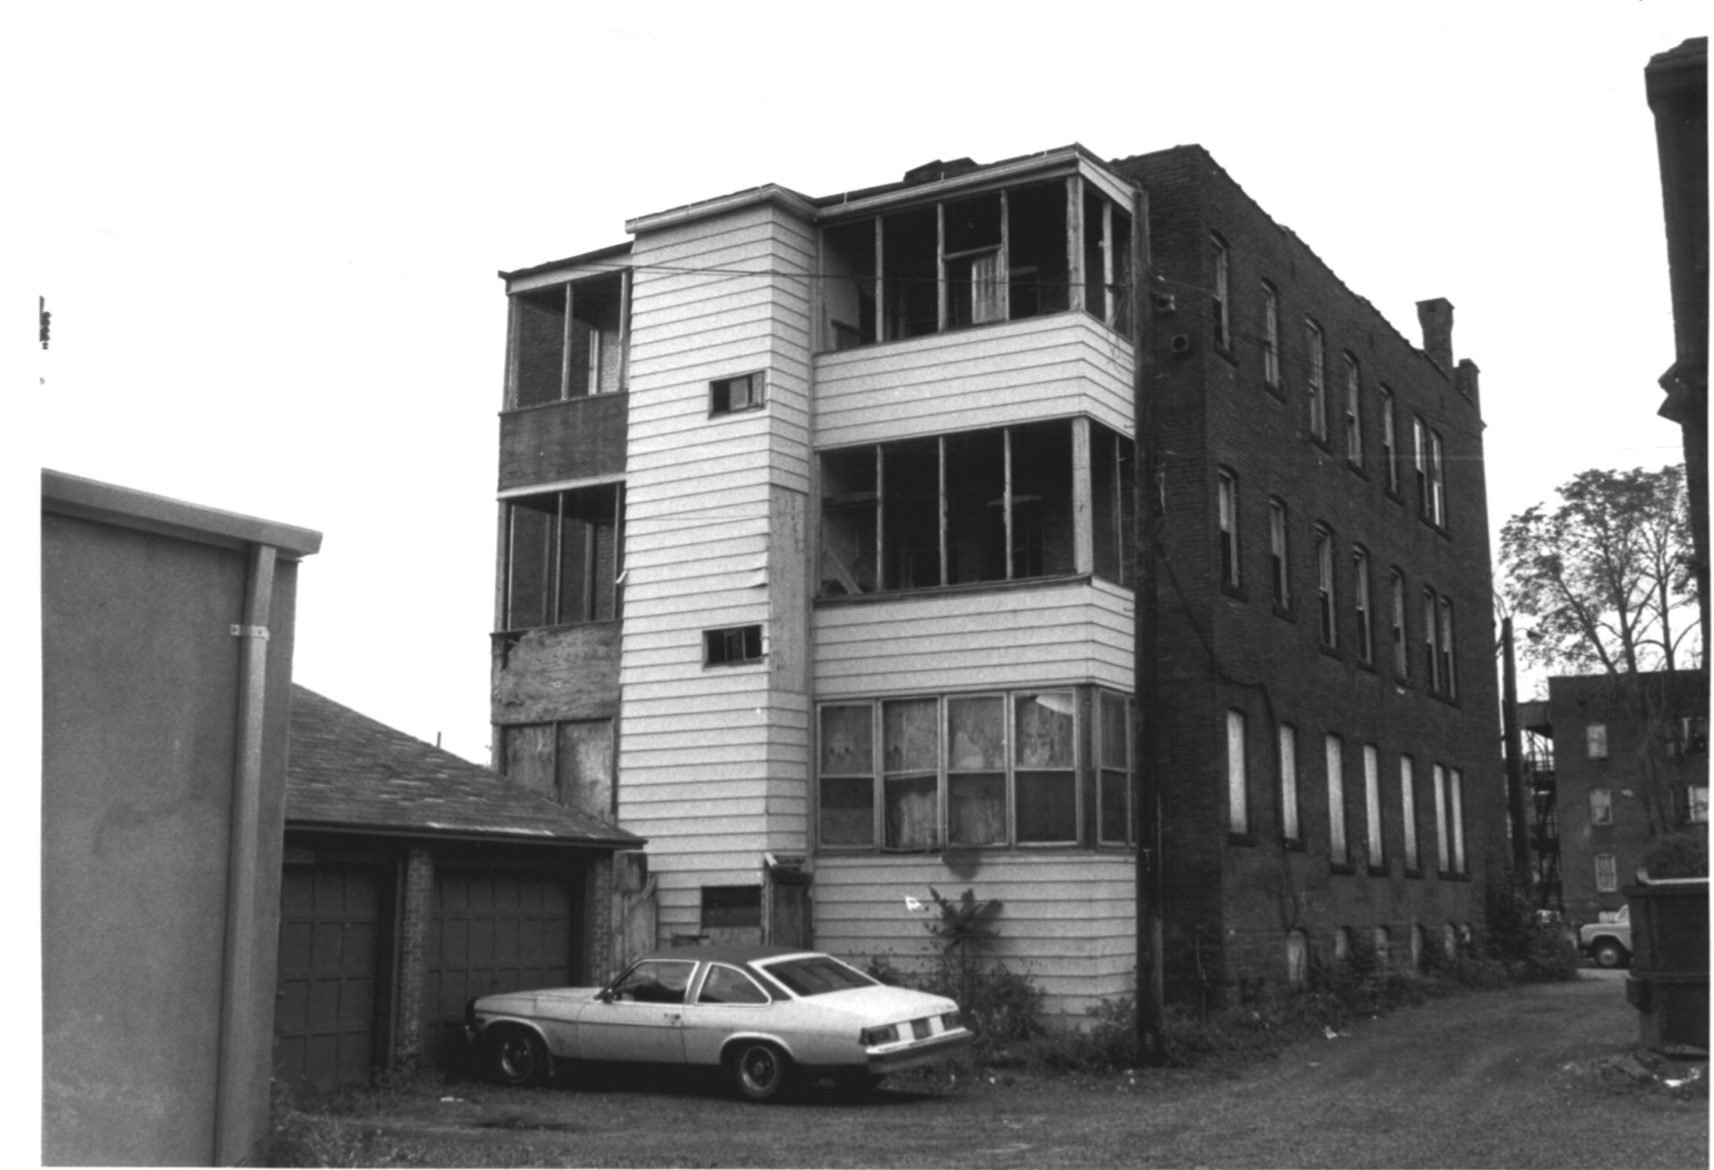 Rear-facing photograph of the Stoneleigh Building, from the NRHP Archive Photographs by D. Ransom 10/81